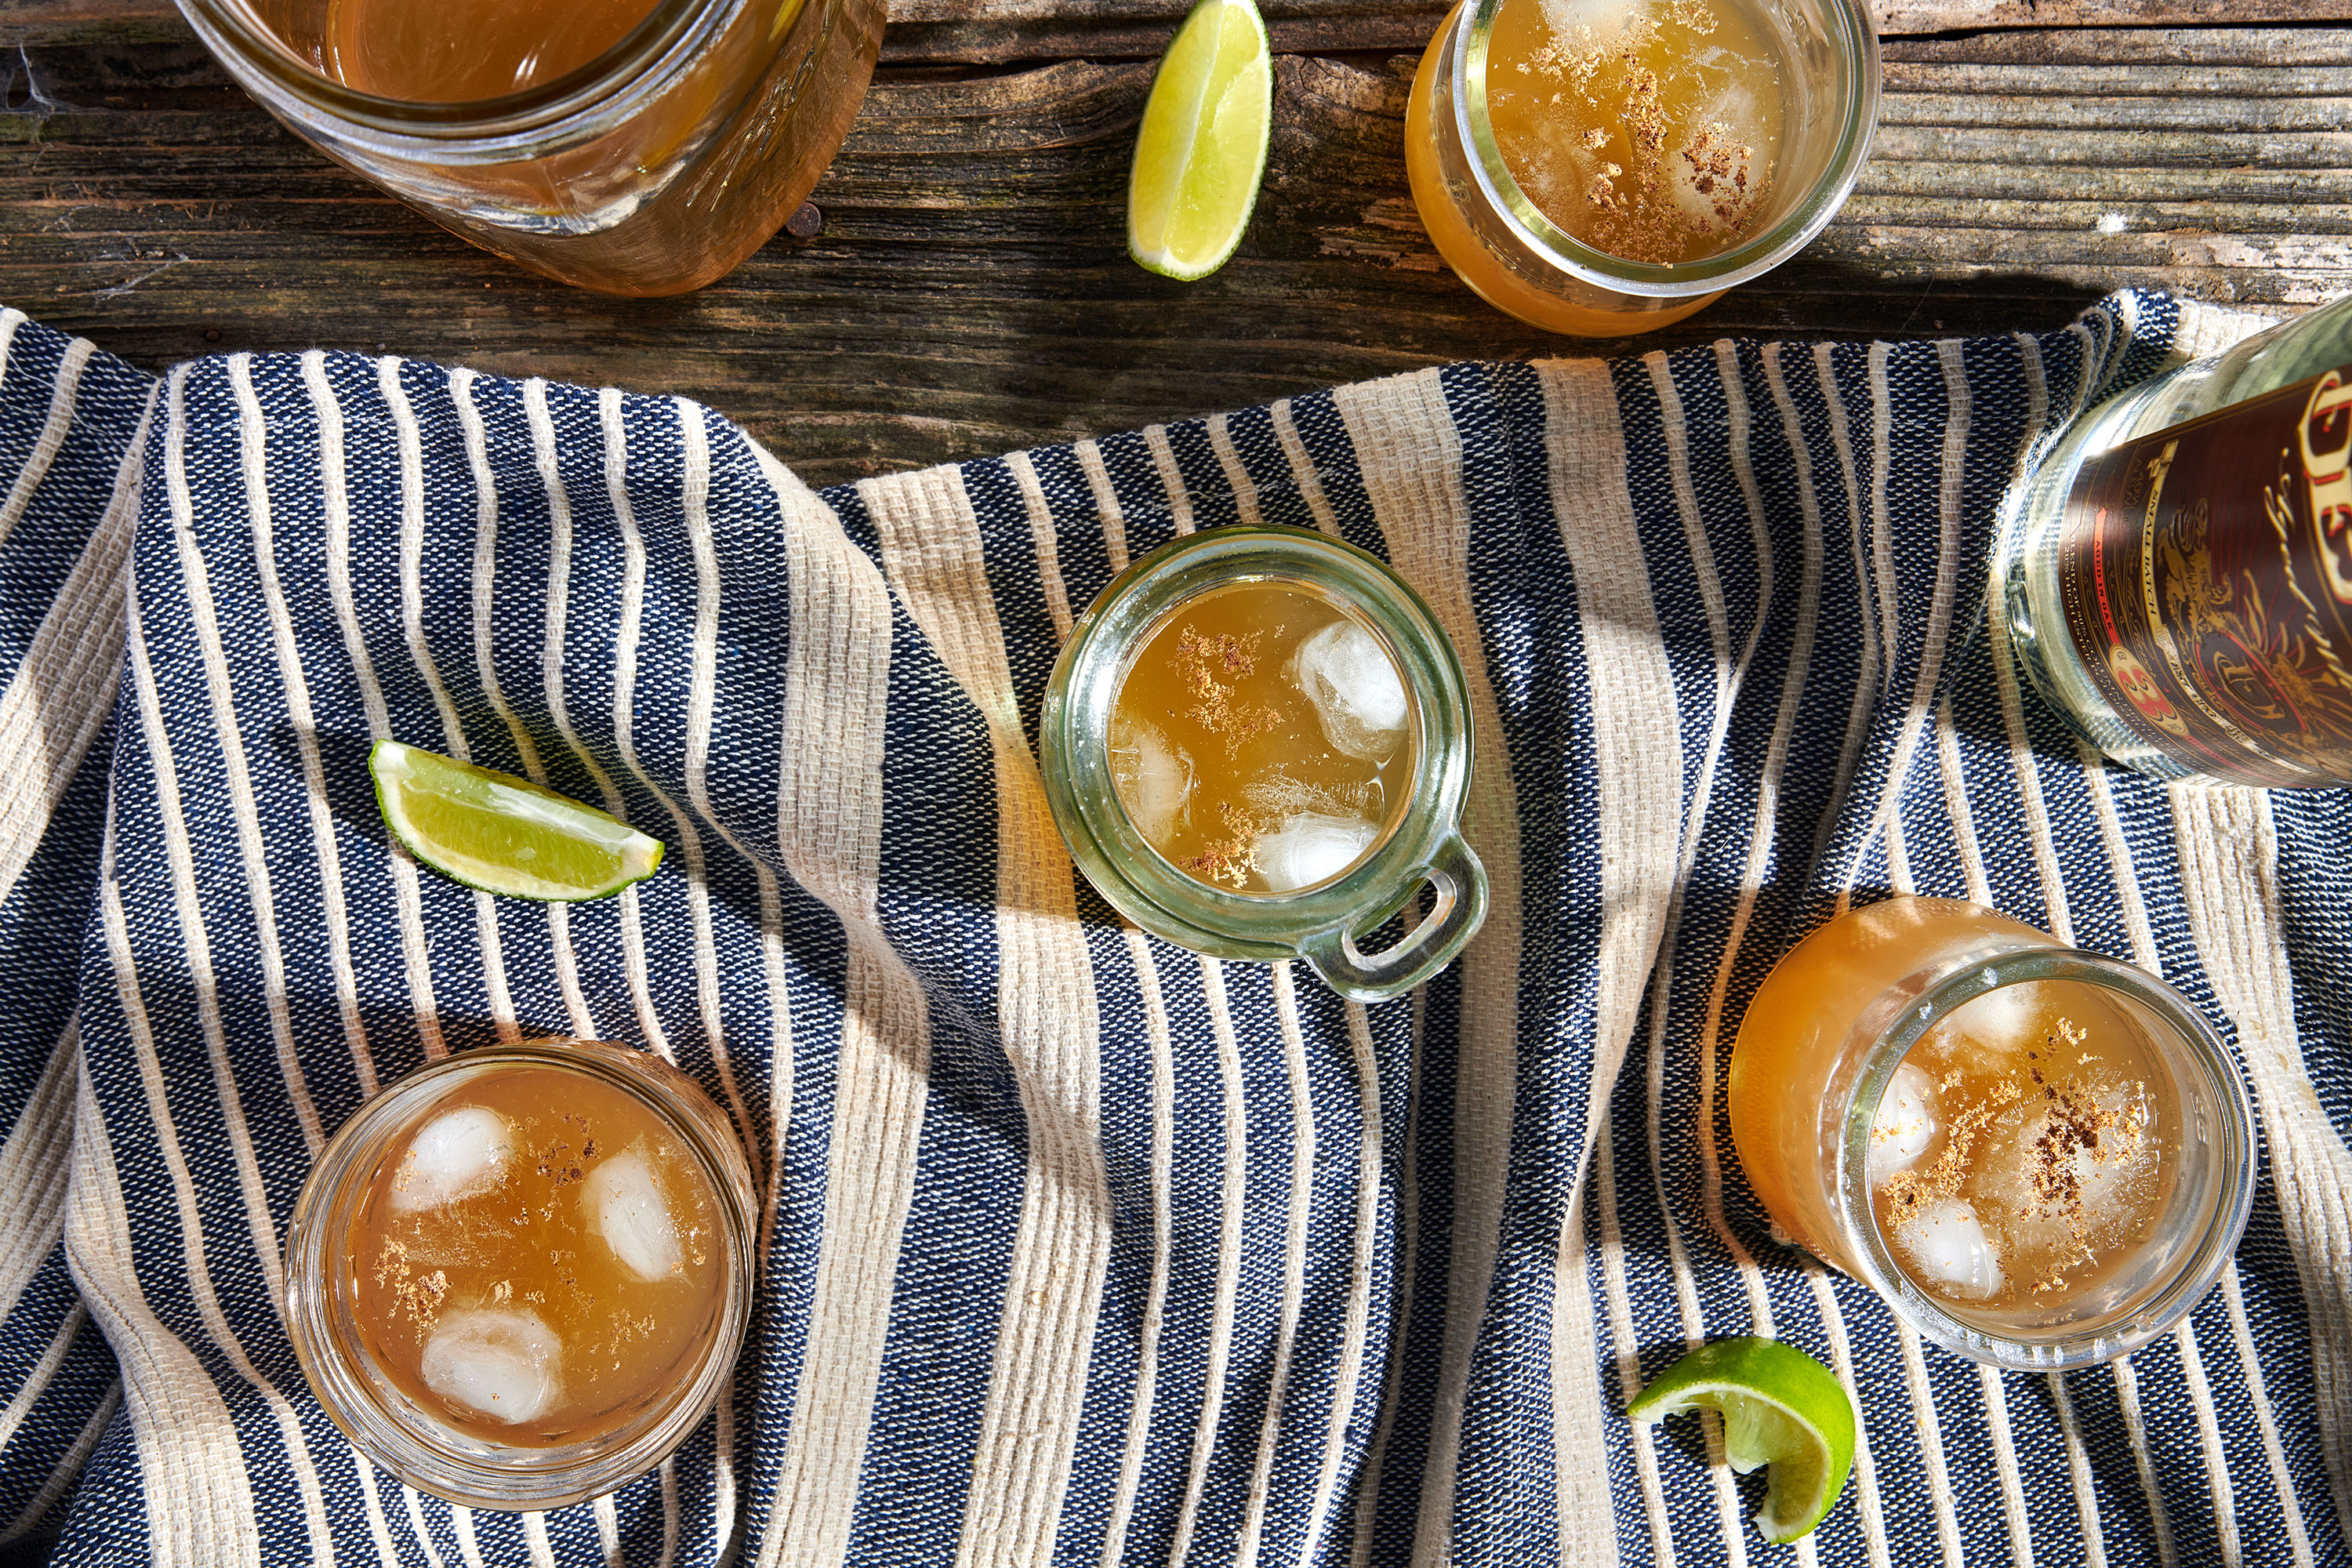 Mason jars filled with ice and orange liquid as seen from above on a picnic table, with blue and white table runner and lime wedges alongside.